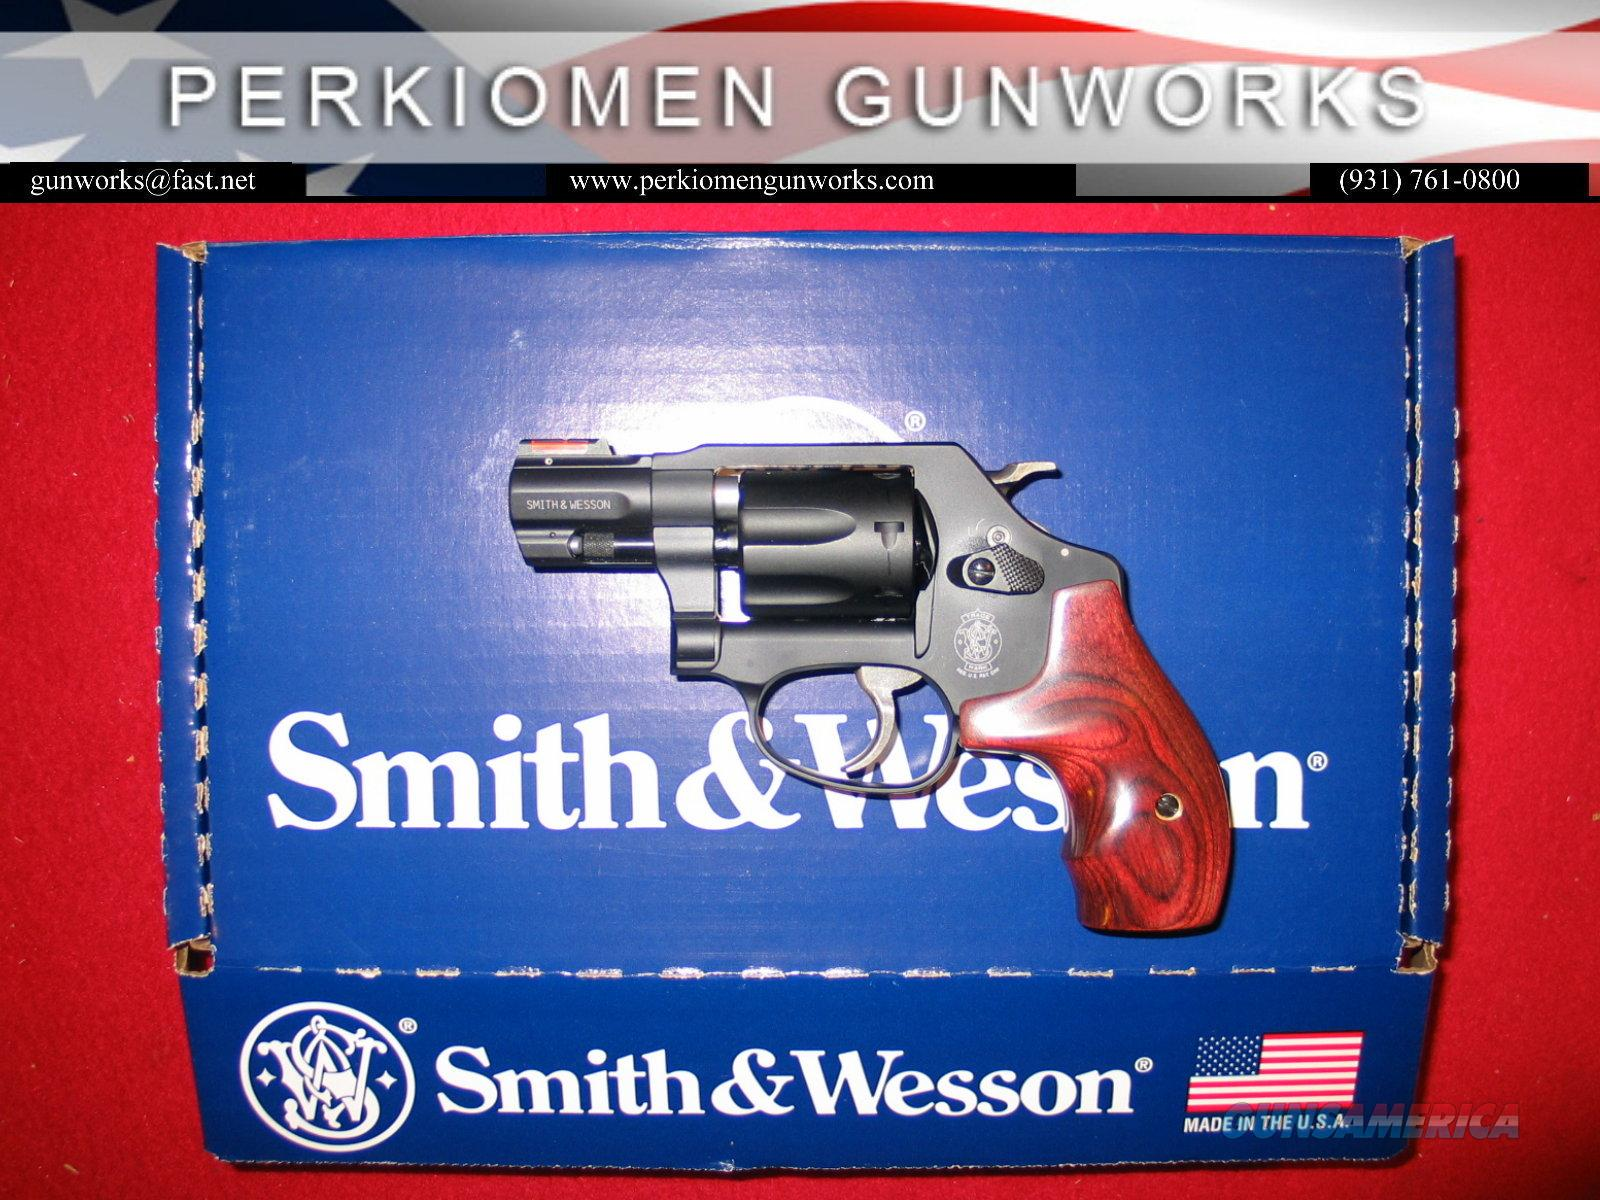 351 PD, .22mag, 7-shot, New in Box  Guns > Pistols > Smith & Wesson Revolvers > Pocket Pistols